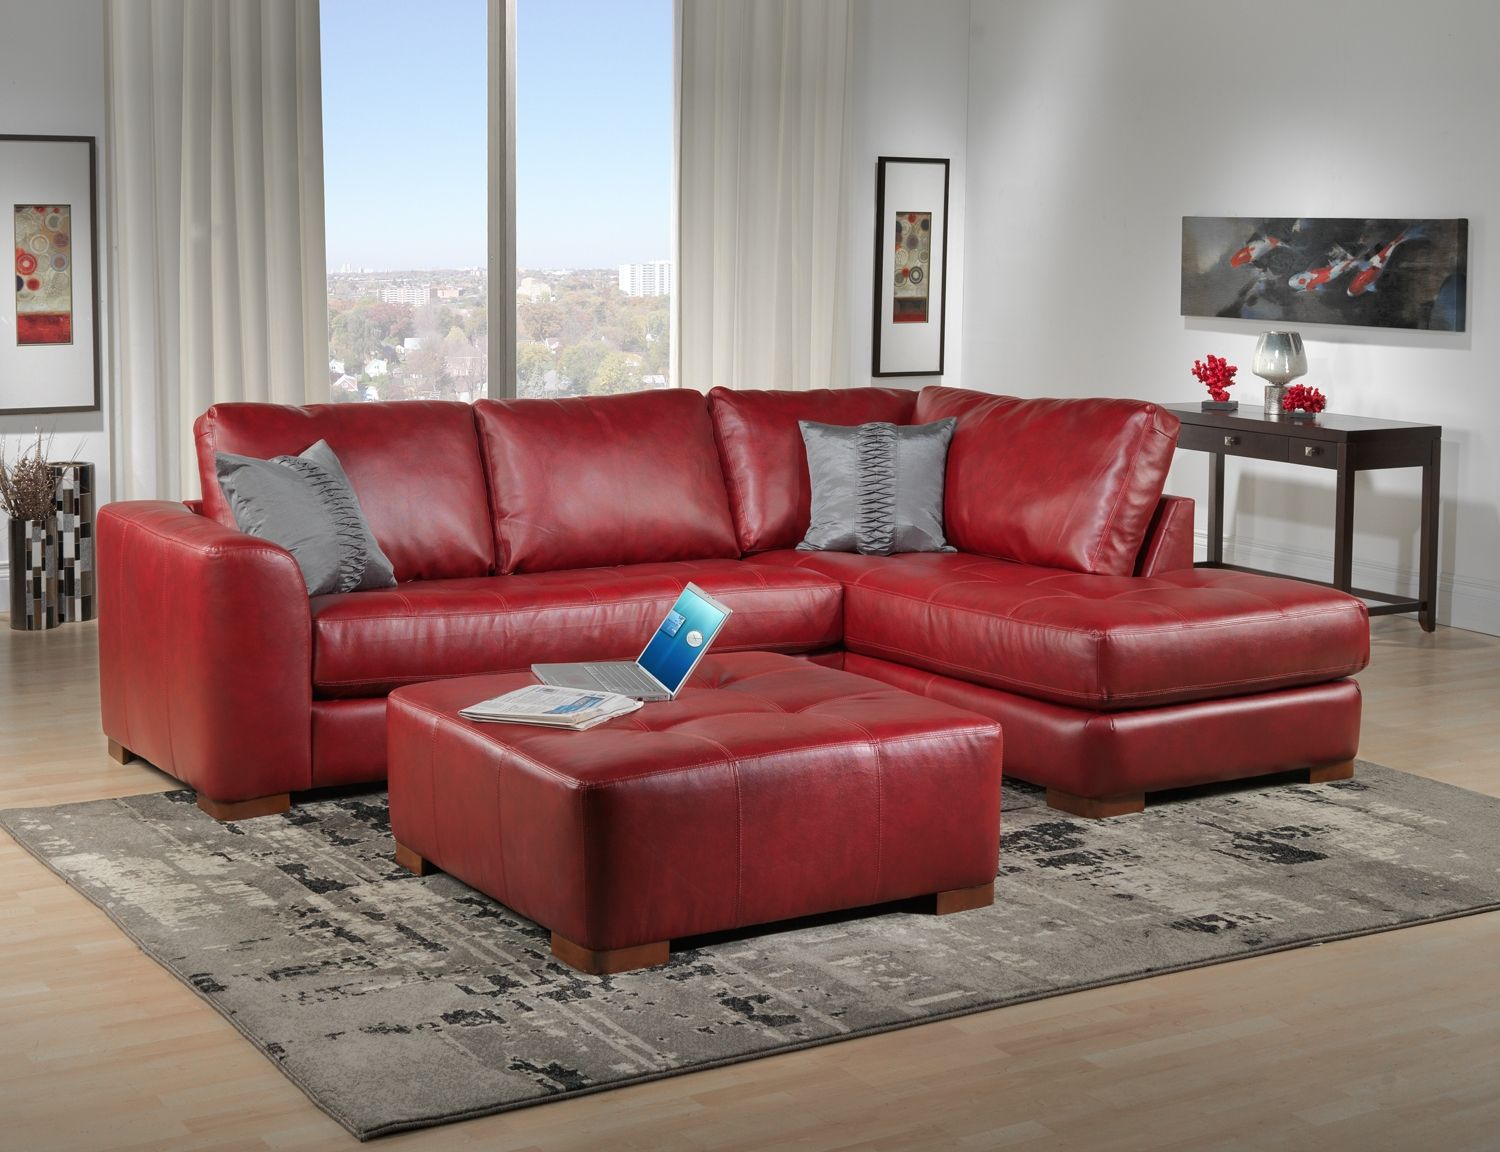 Living Room With Red Furniture 1000 Ideas About Red Leather Sofas On Pinterest Red Leather